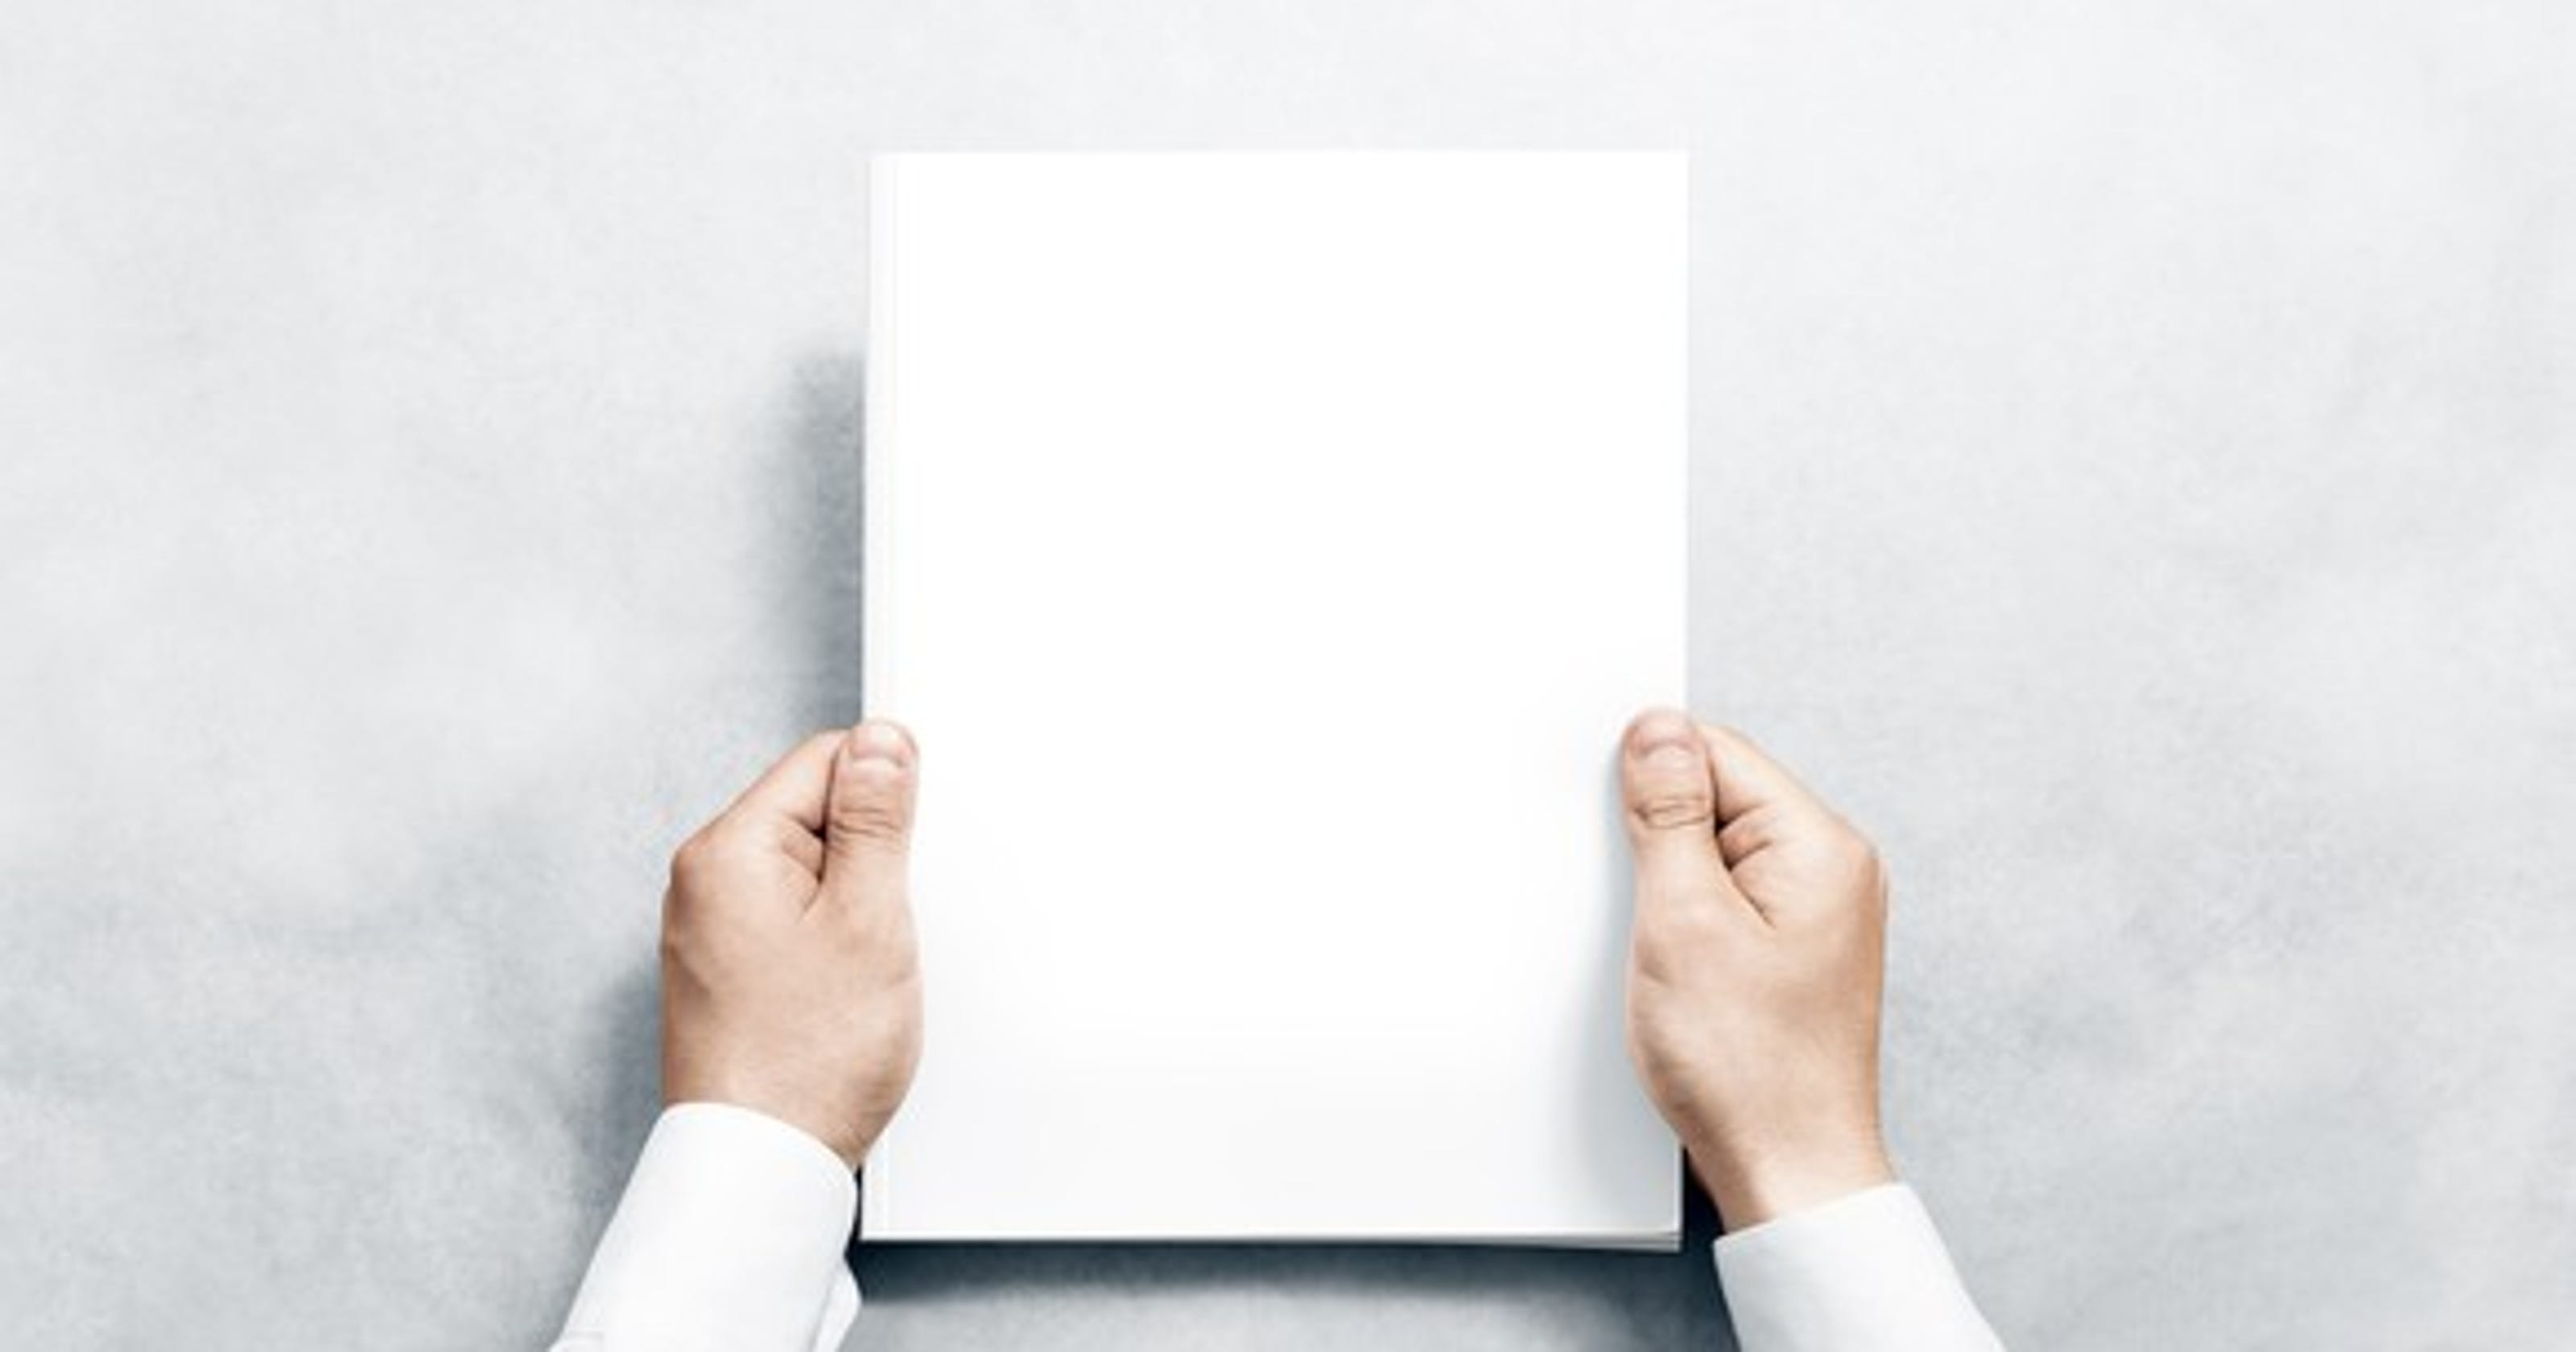 Job search: 3 cover letter tips to help you land that interview